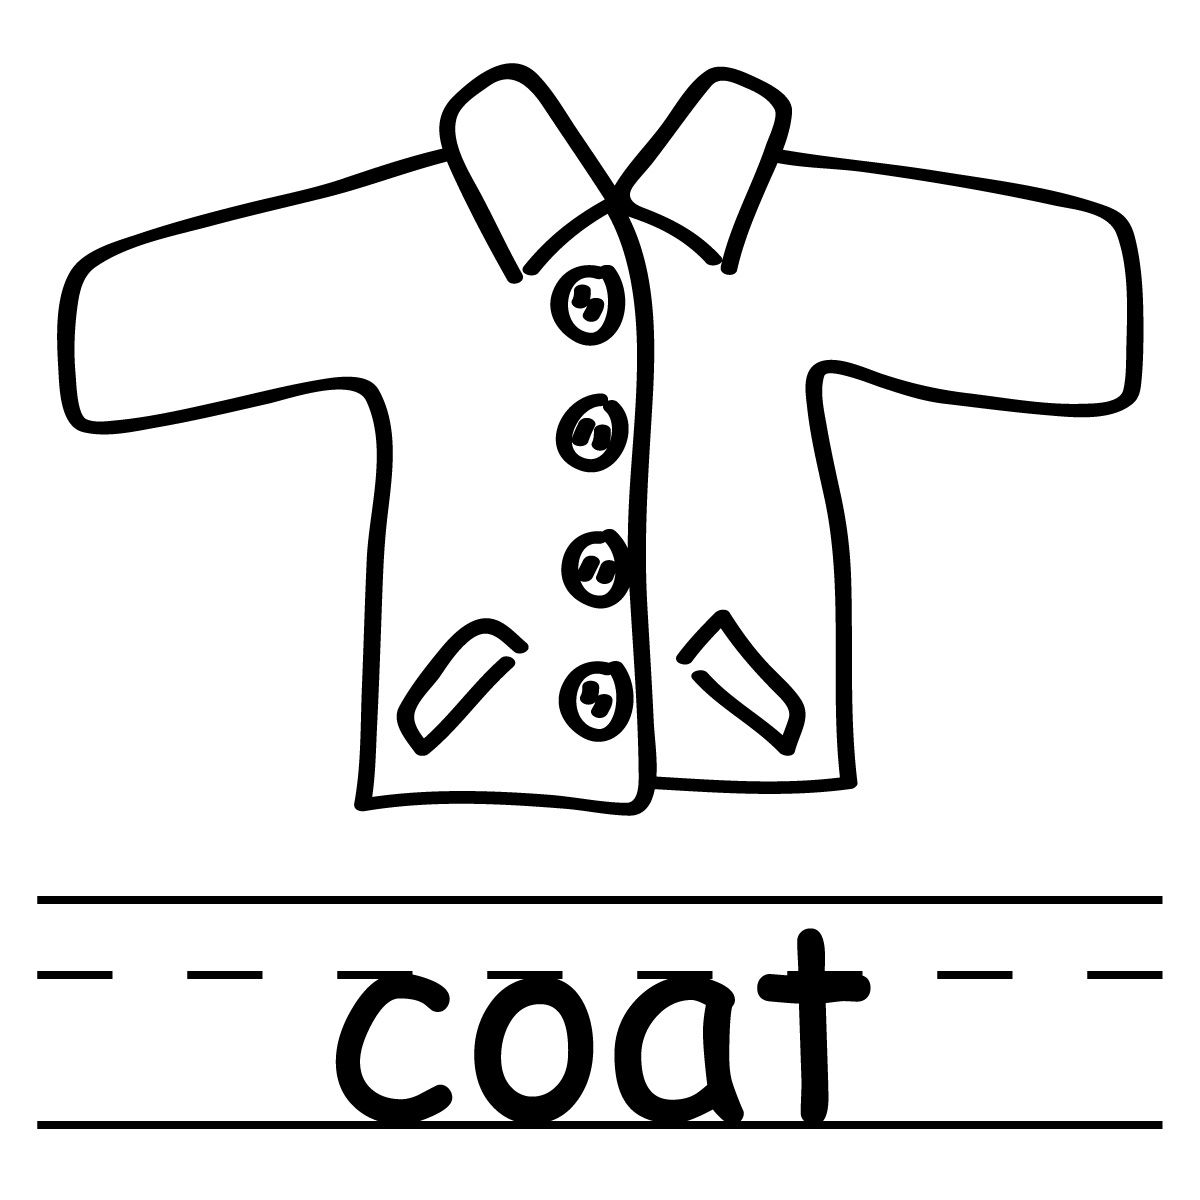 small resolution of free clipart for teachers clothing for teachers parents students and similar image and photo in clothing